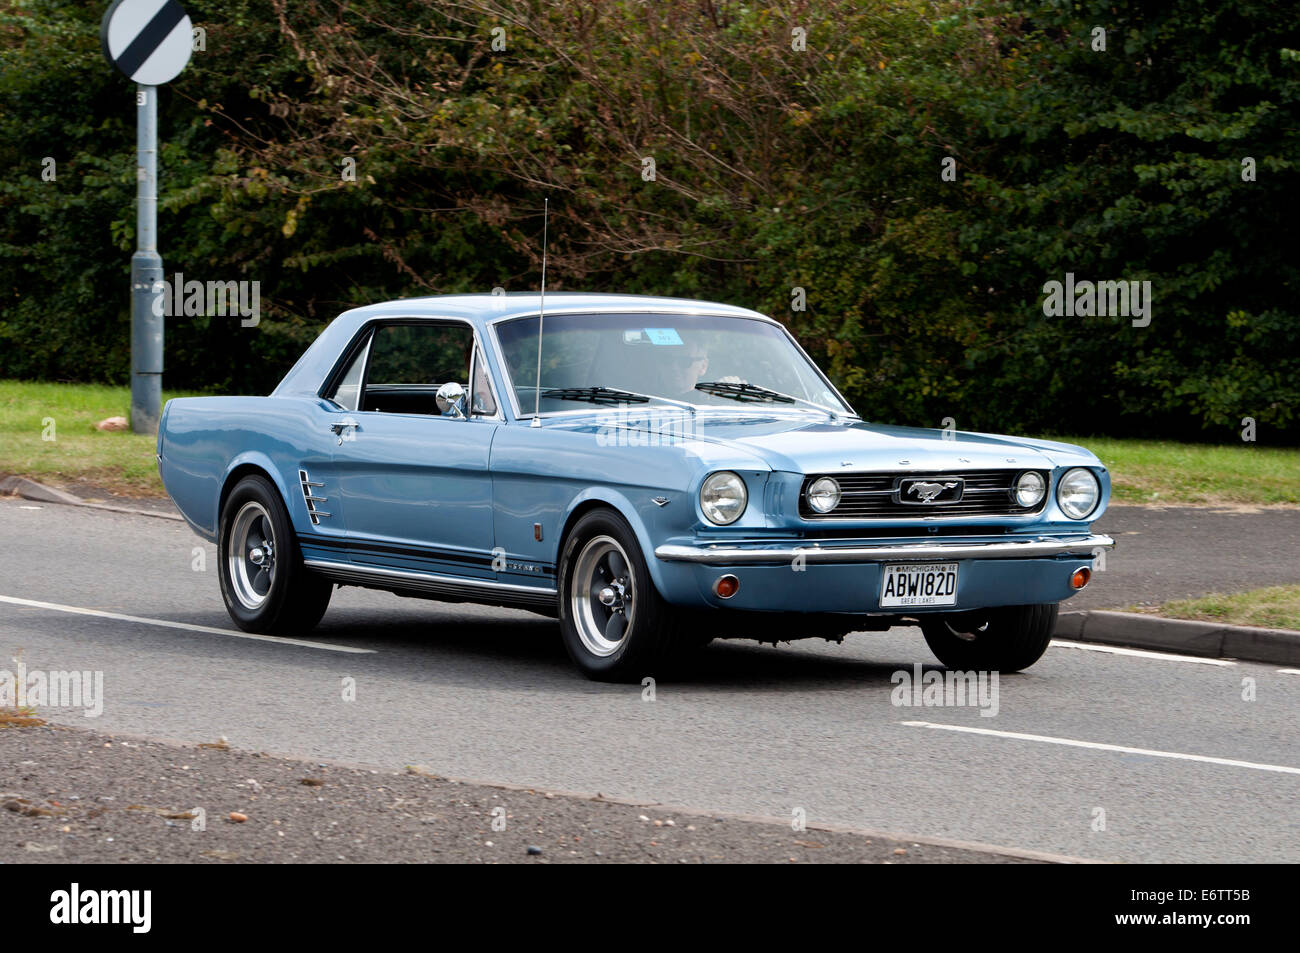 1966 ford mustang car on the fosse way road warwickshire uk stock image